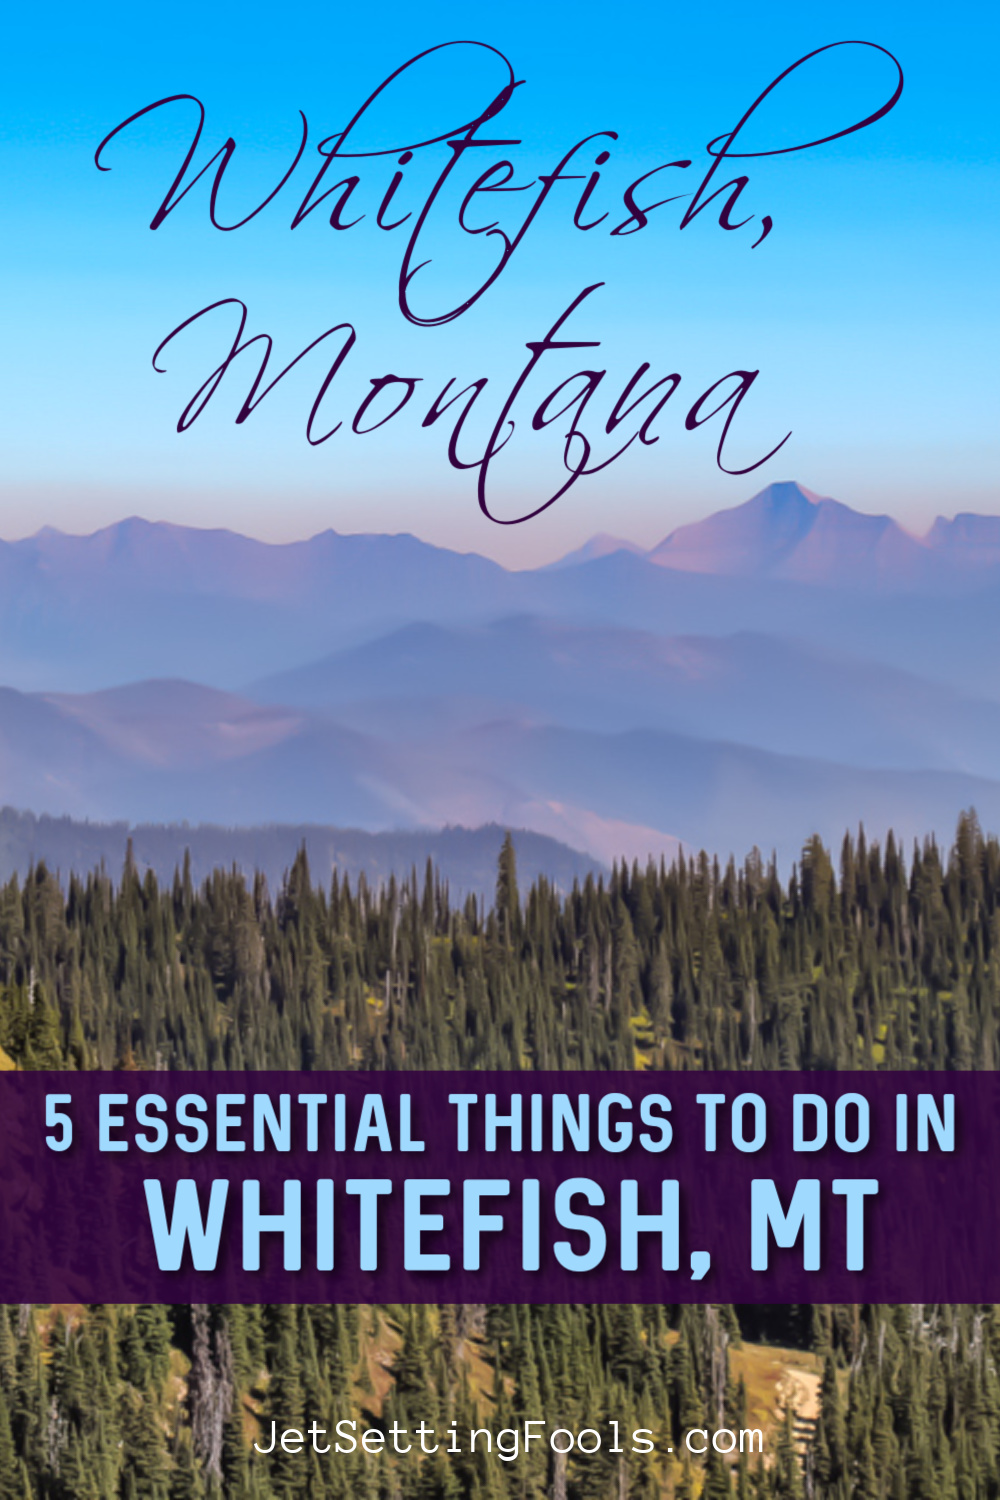 Five Things To Do in Whitefish, Montana by JetSettingFools.com